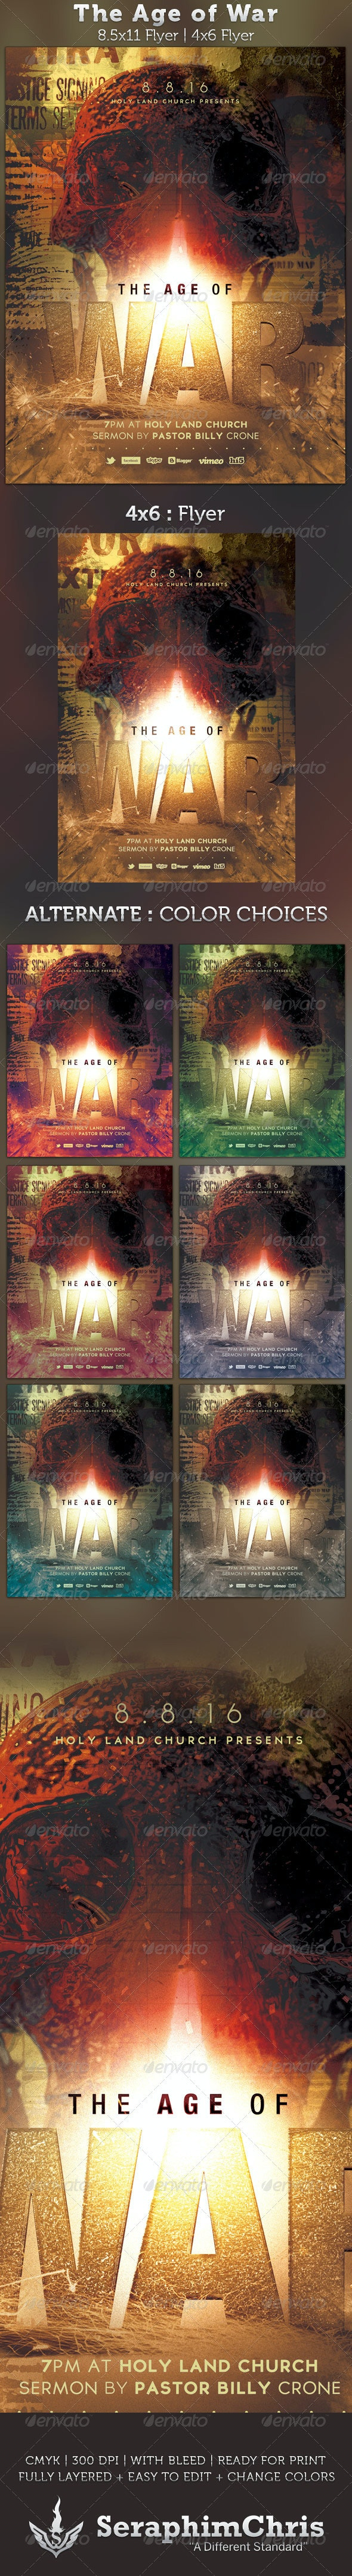 The Age of War Church Flyer Template - Church Flyers